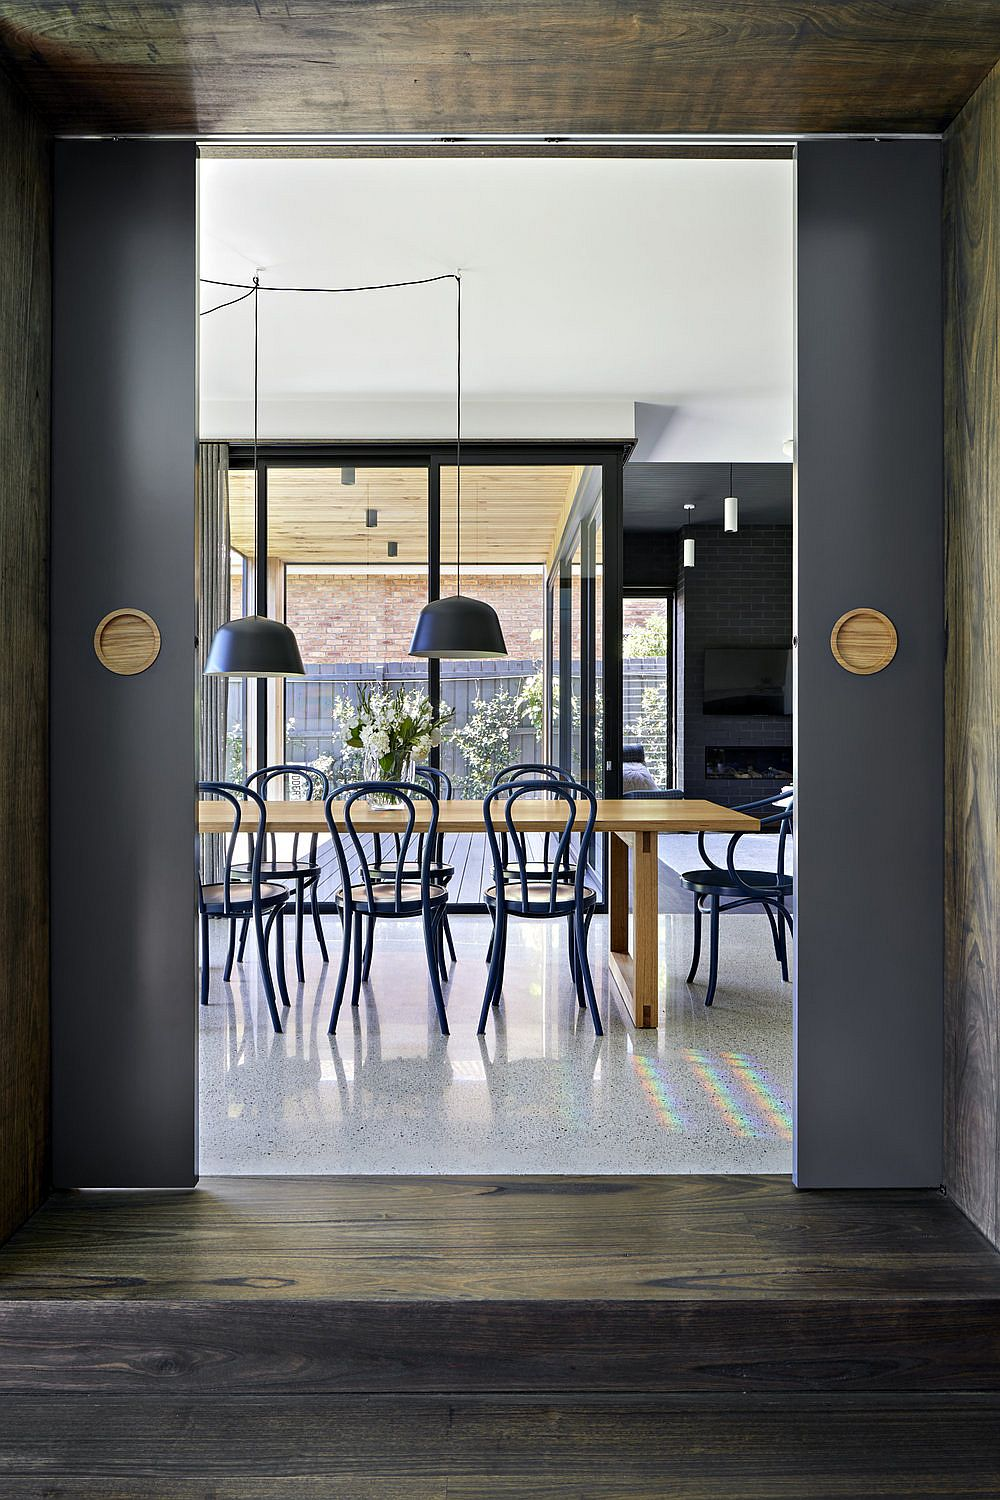 Bluish-gray shapes the dining area of the large family home with a renovated interior